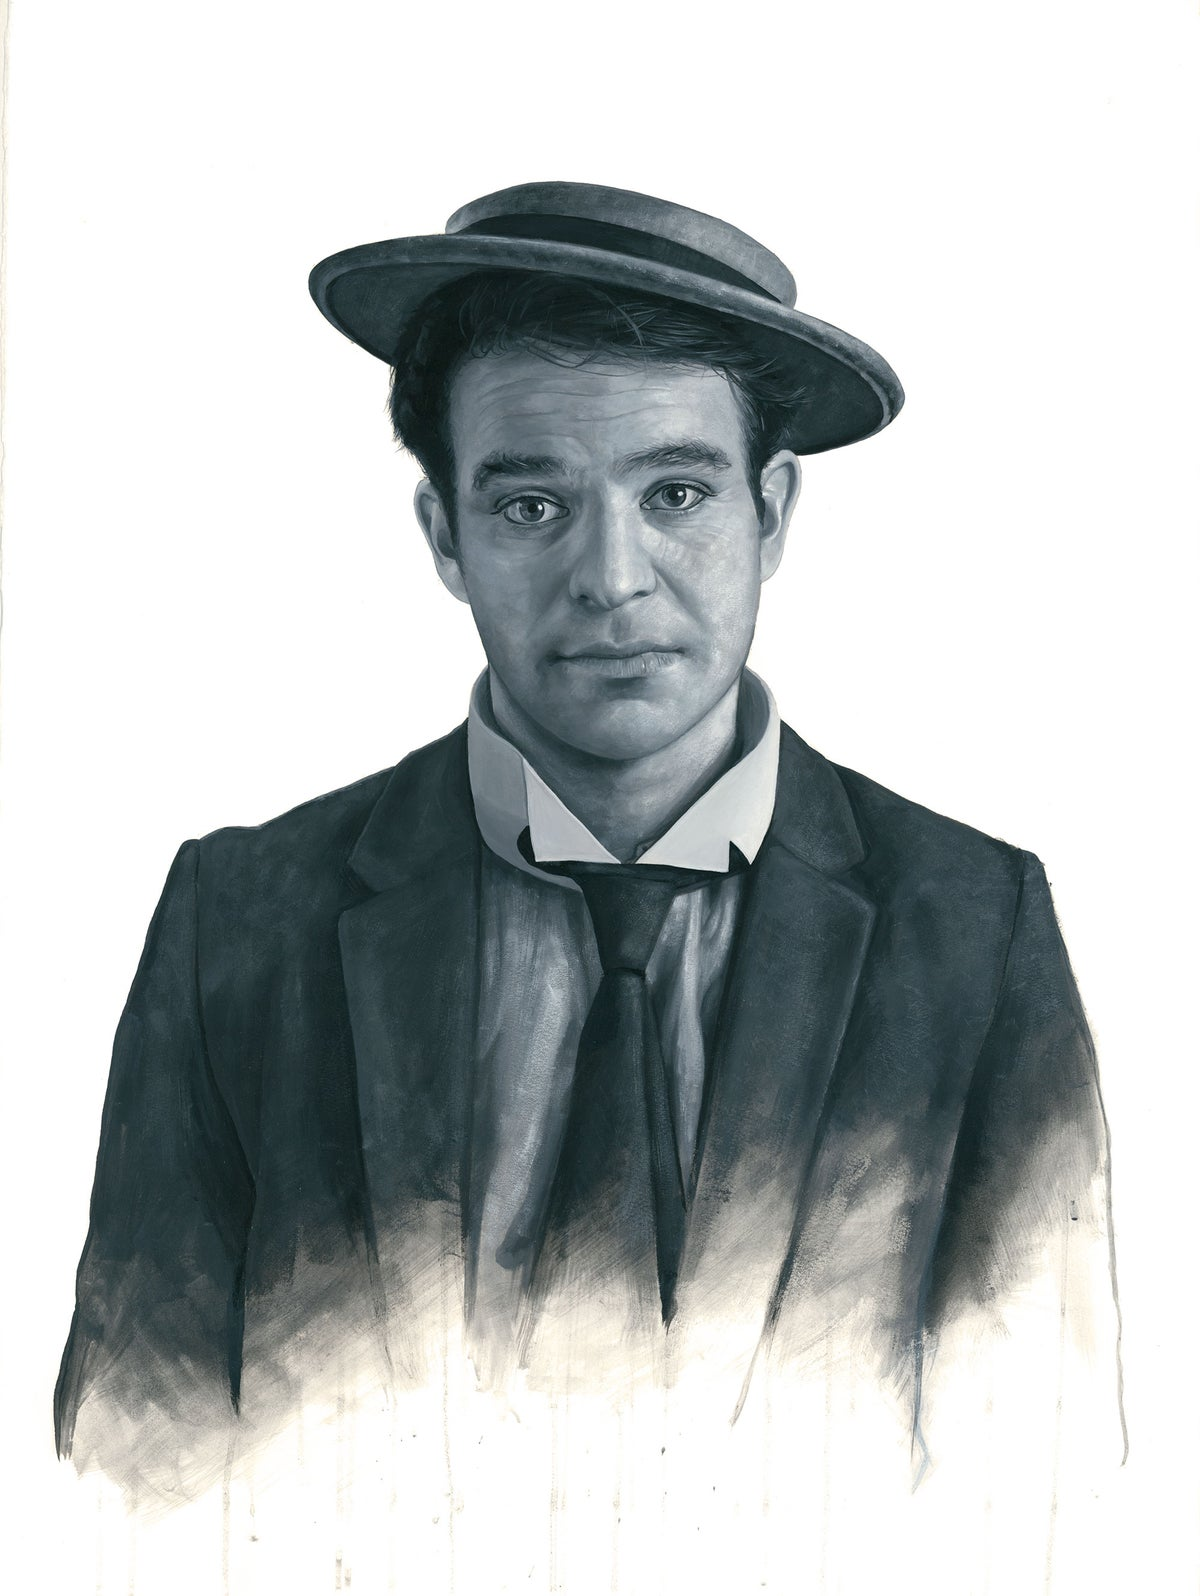 Charlie Cox as Buster Keaton // LIMITED EDITION PRINT